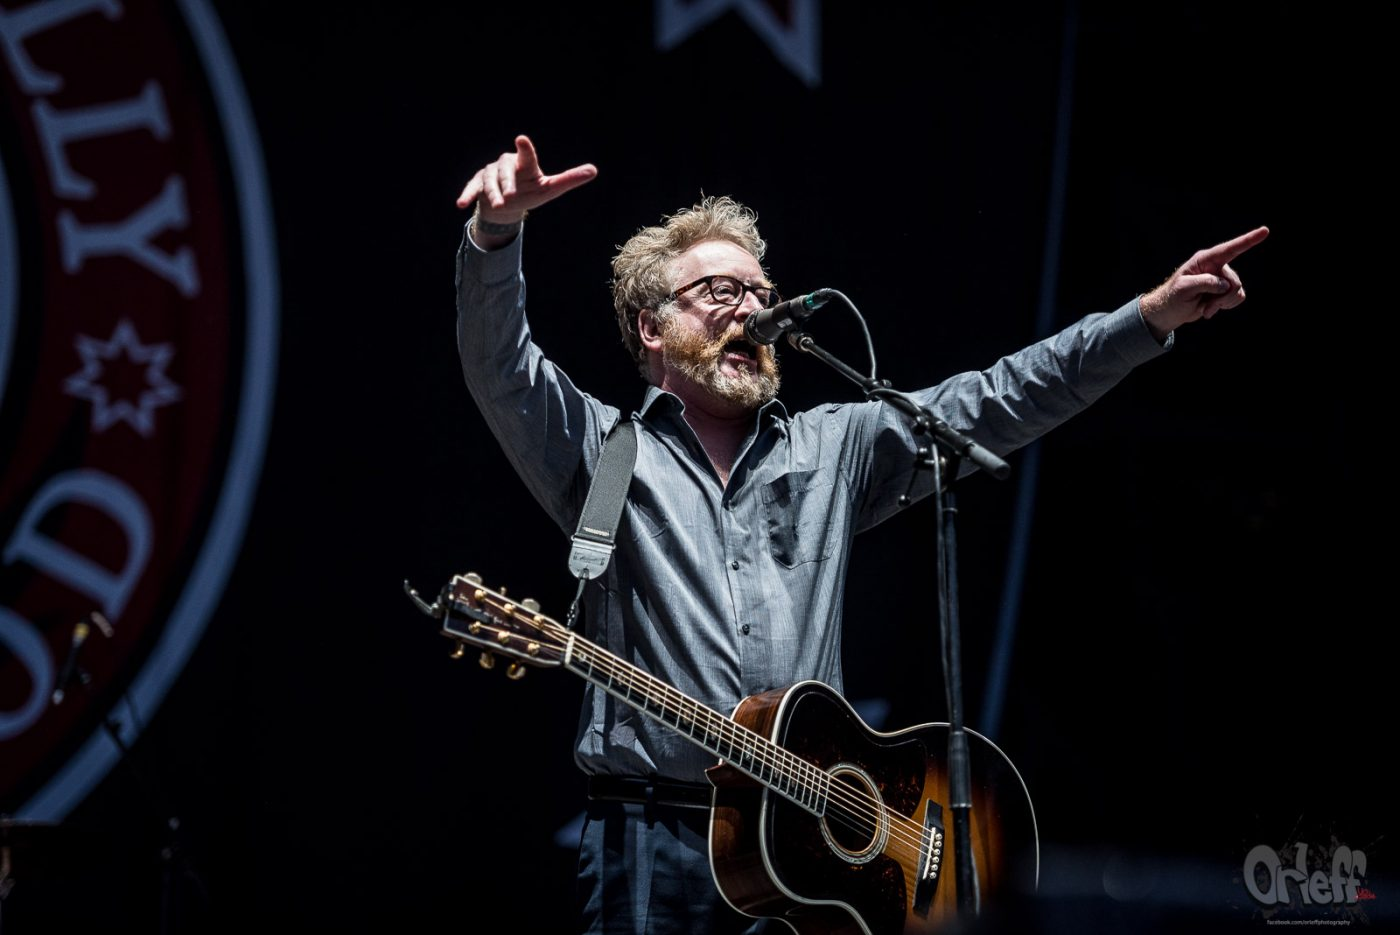 Flogging Molly @ INmusic festival, 2017